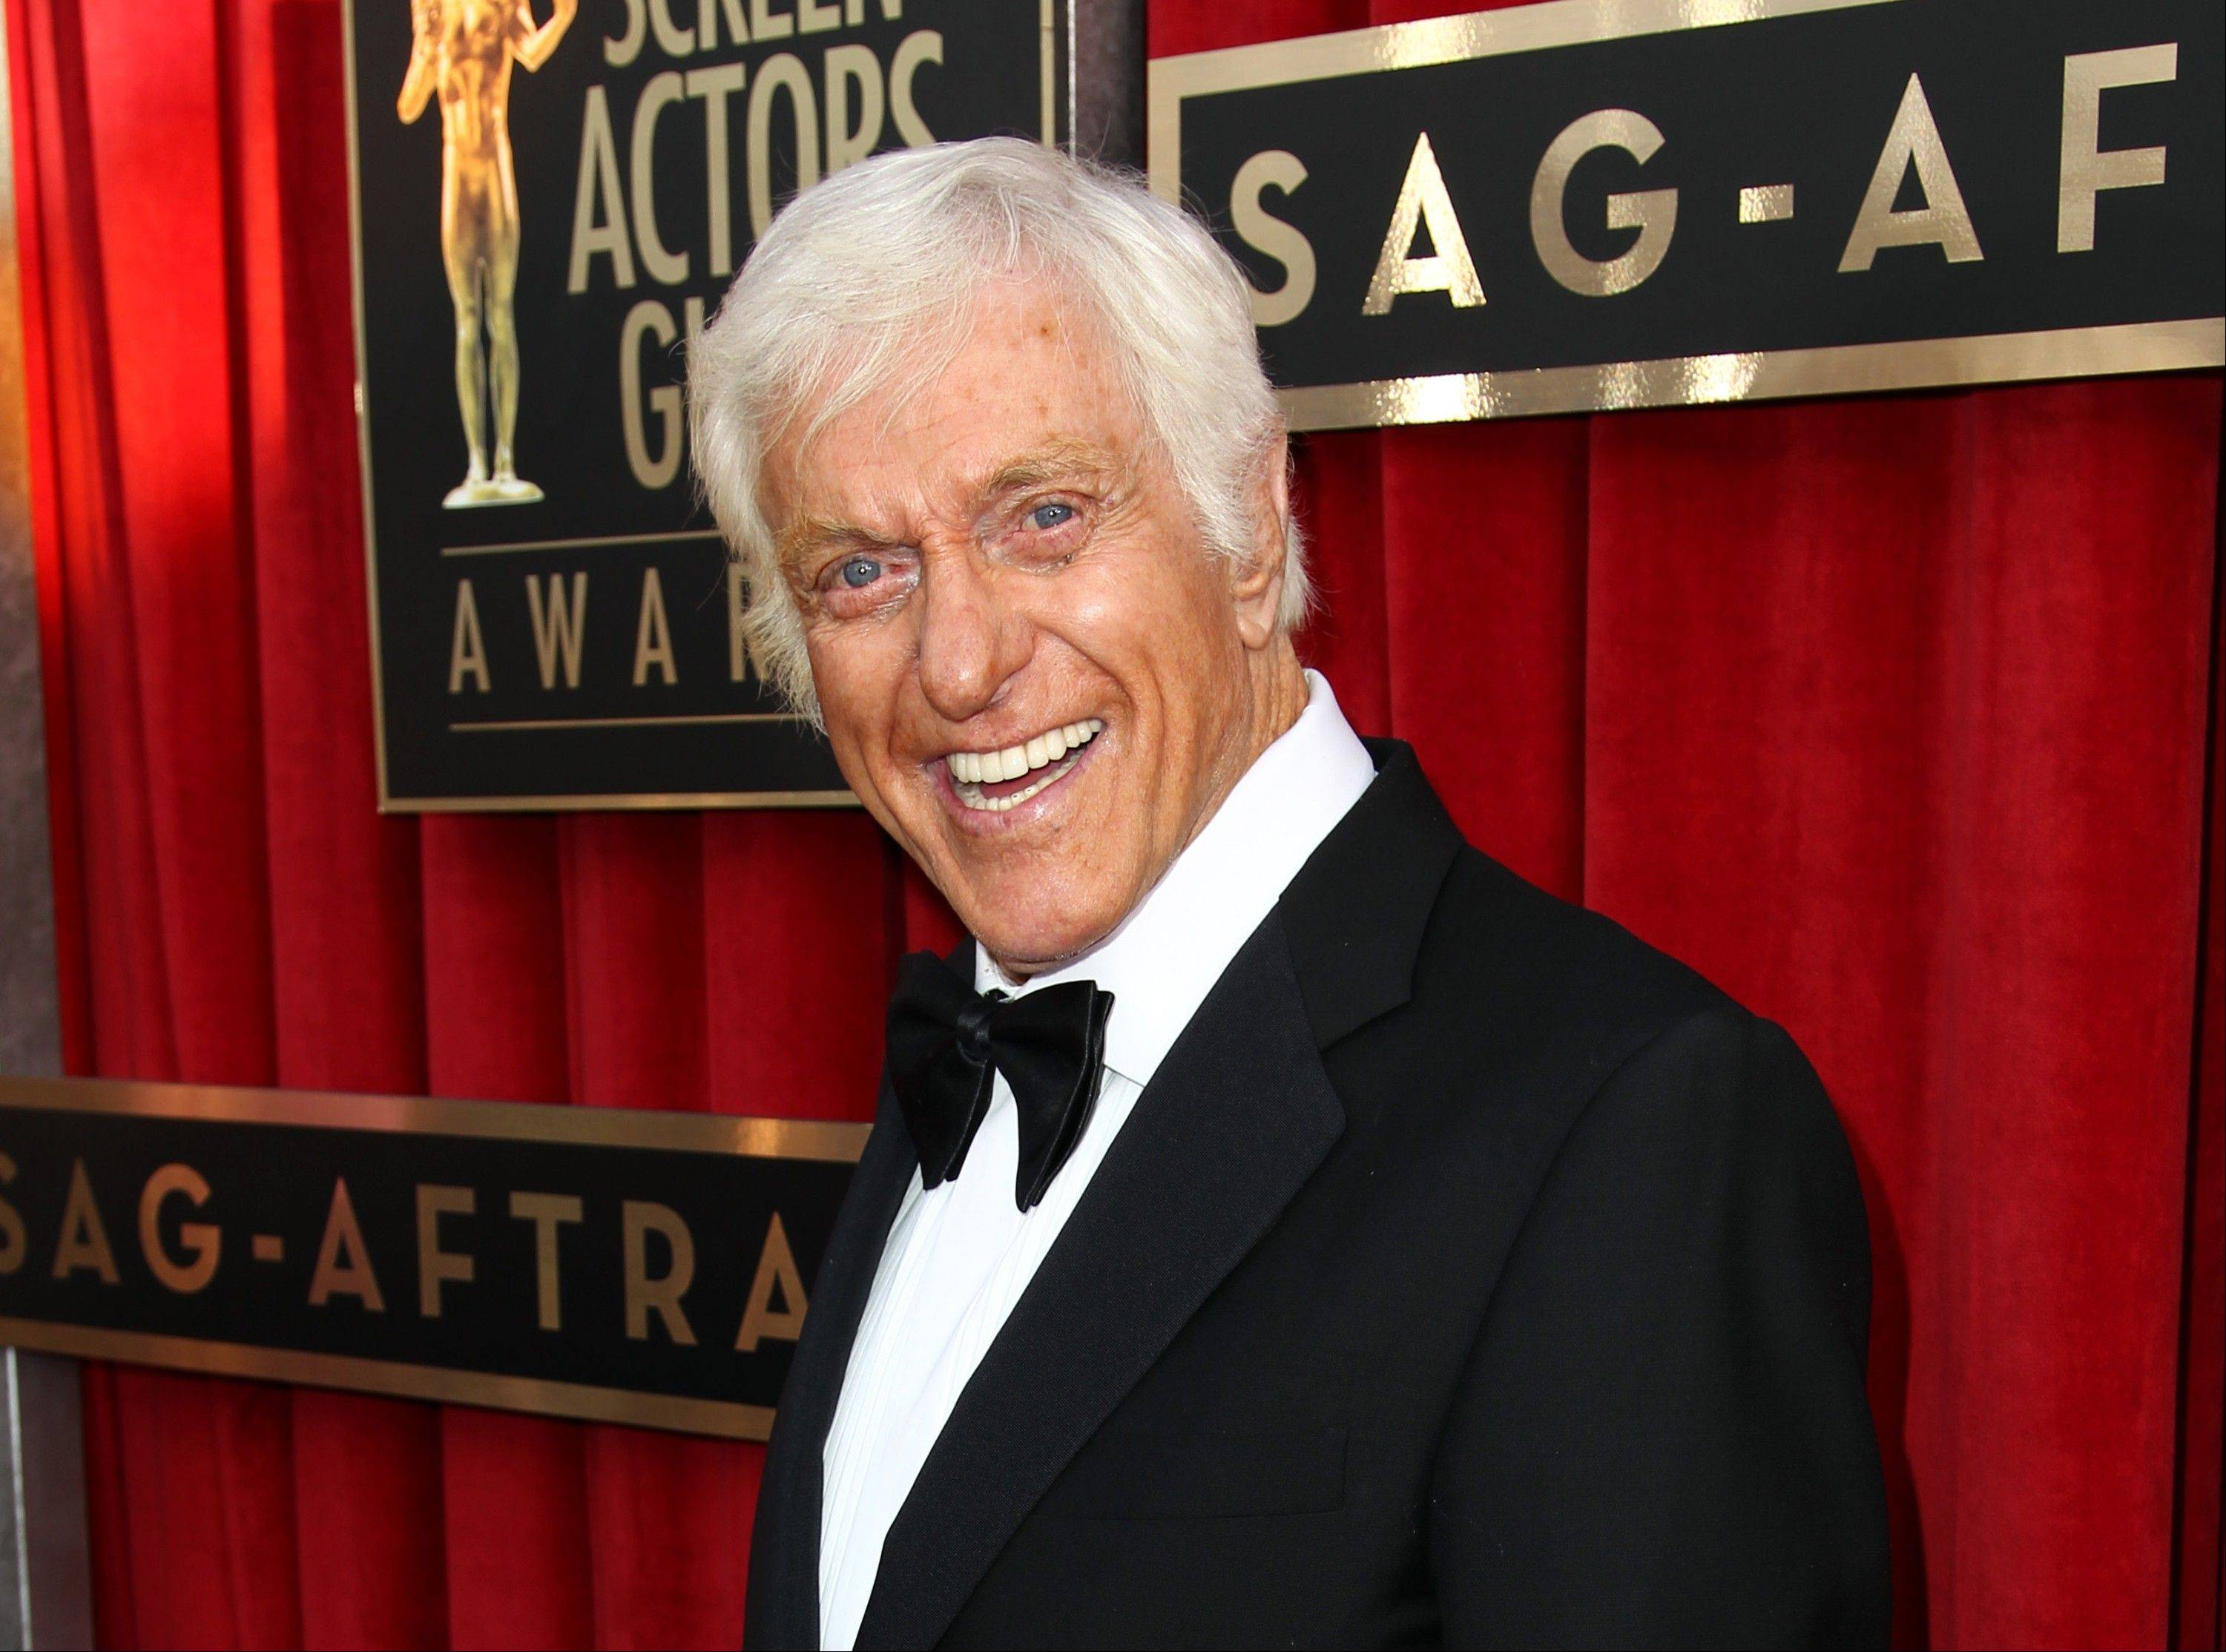 This Jan. 27, 2013, photo shows actor Dick Van Dyke at the 19th Annual Screen Actors Guild Awards at the Shrine Auditorium in Los Angeles. Van Dyke is fine after his Jaguar caught fire Monday while he was driving on a Los Angeles freeway.